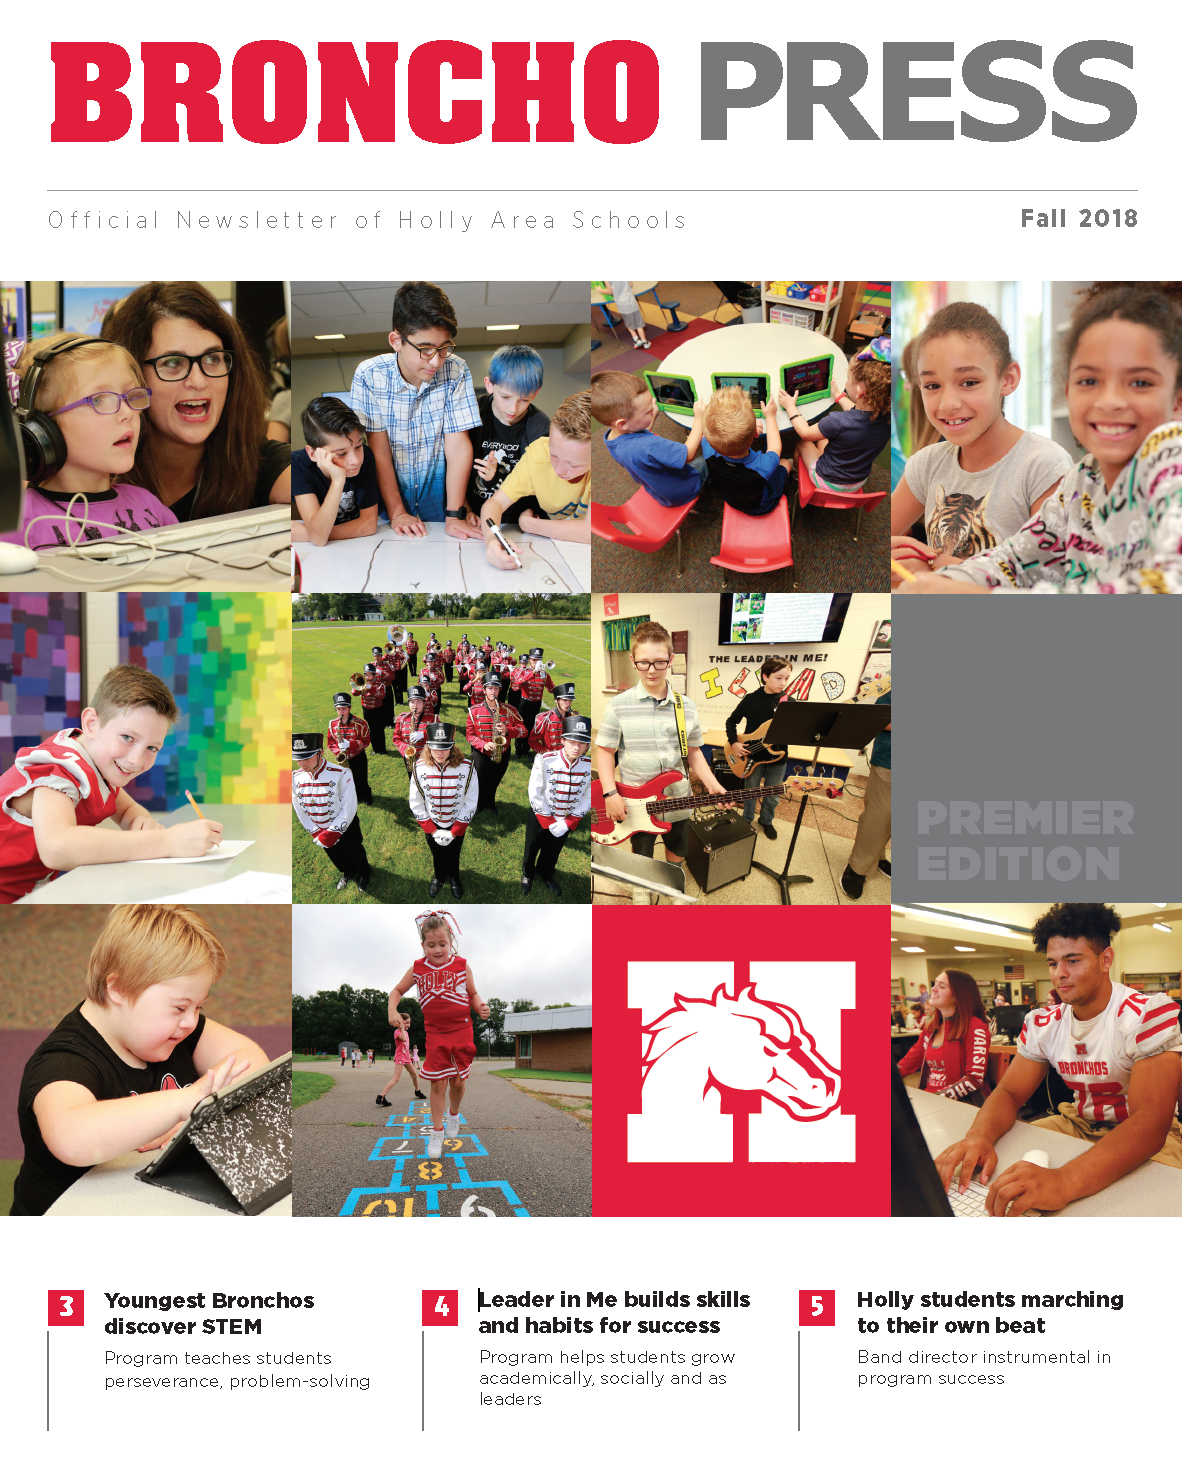 Holly Area Schools official newsletter - picture of the Broncho Press